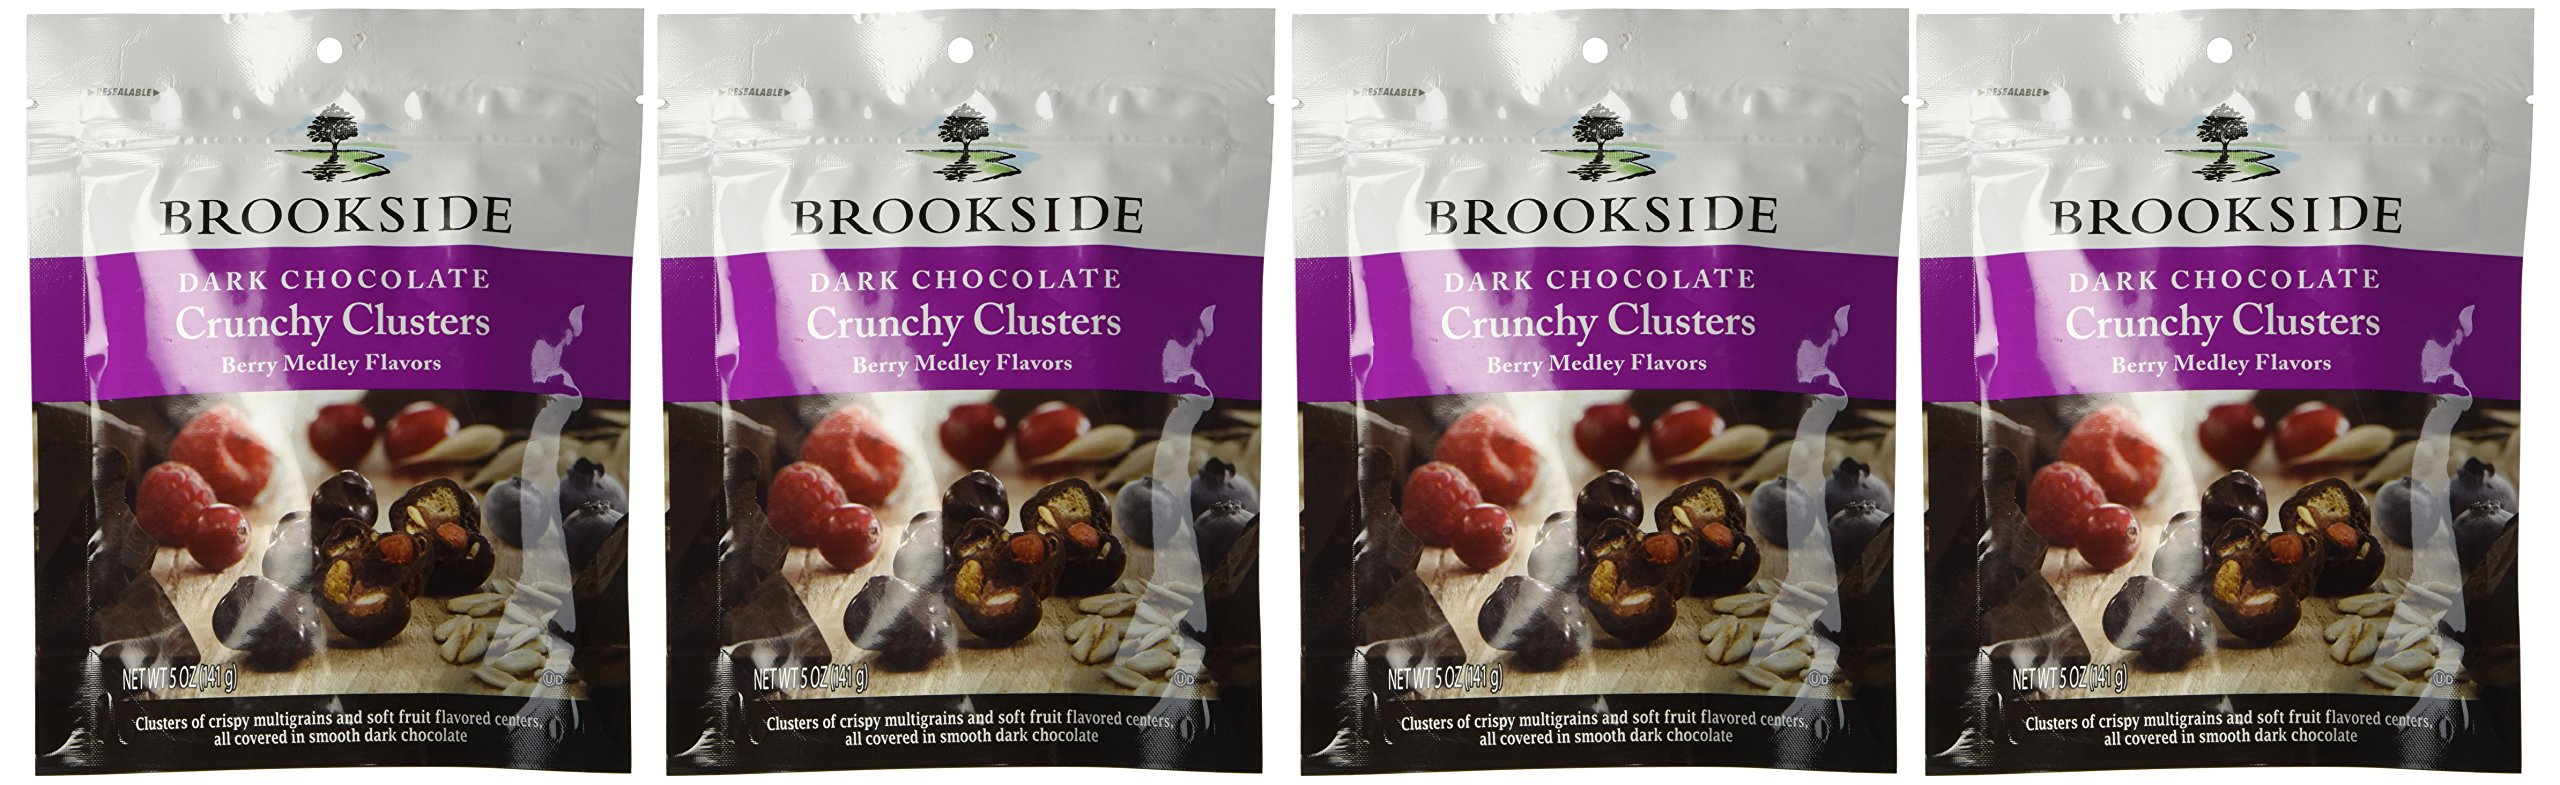 Brookside Dark Chocolate Crunchy Clusters Berry Medley Fruit Flavors Pouch, 5 Ounce(pack of 4 Bags)